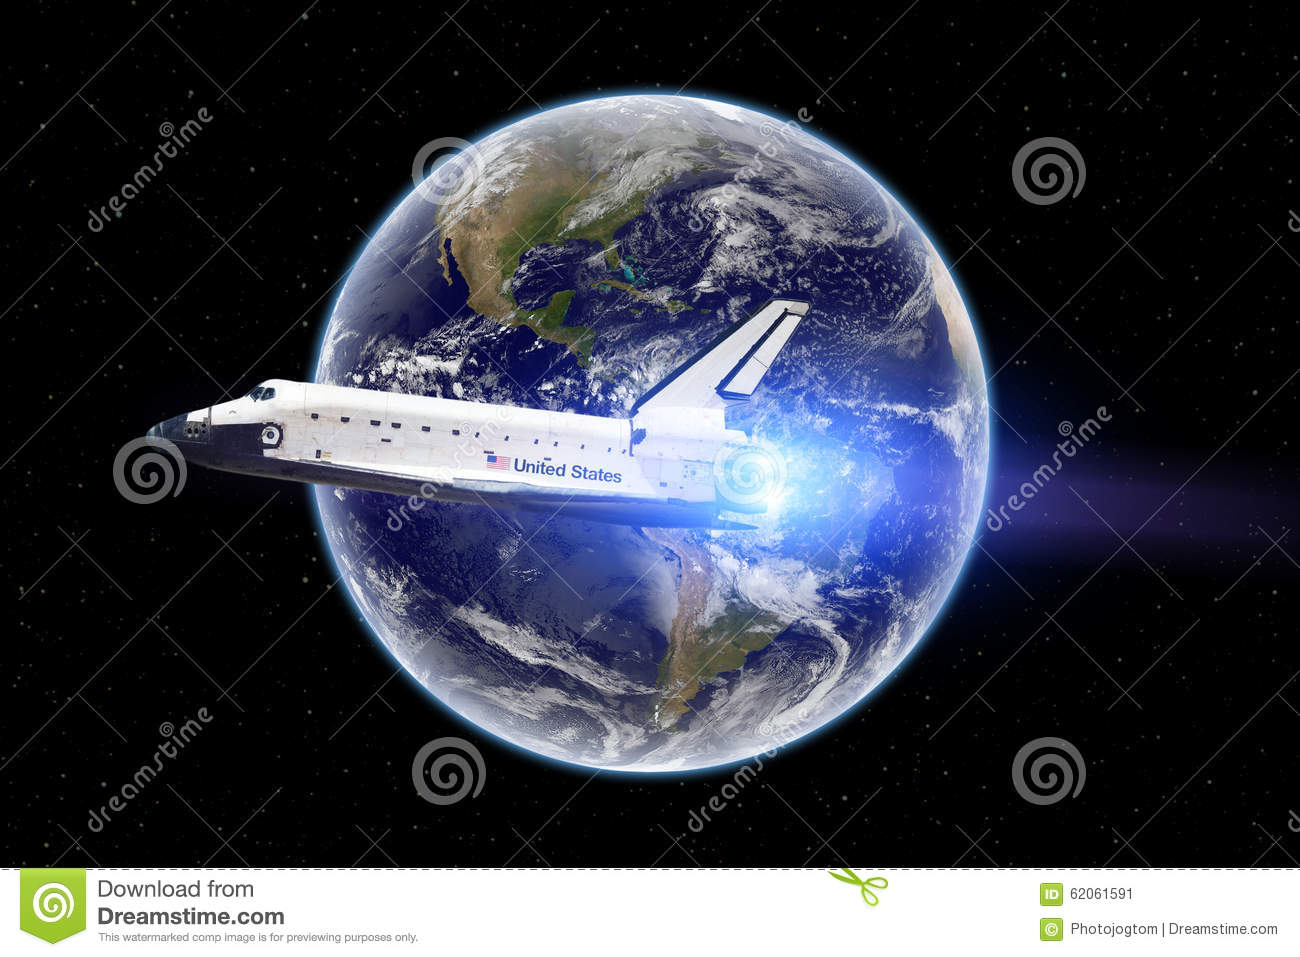 space shuttle trip around earth - photo #34